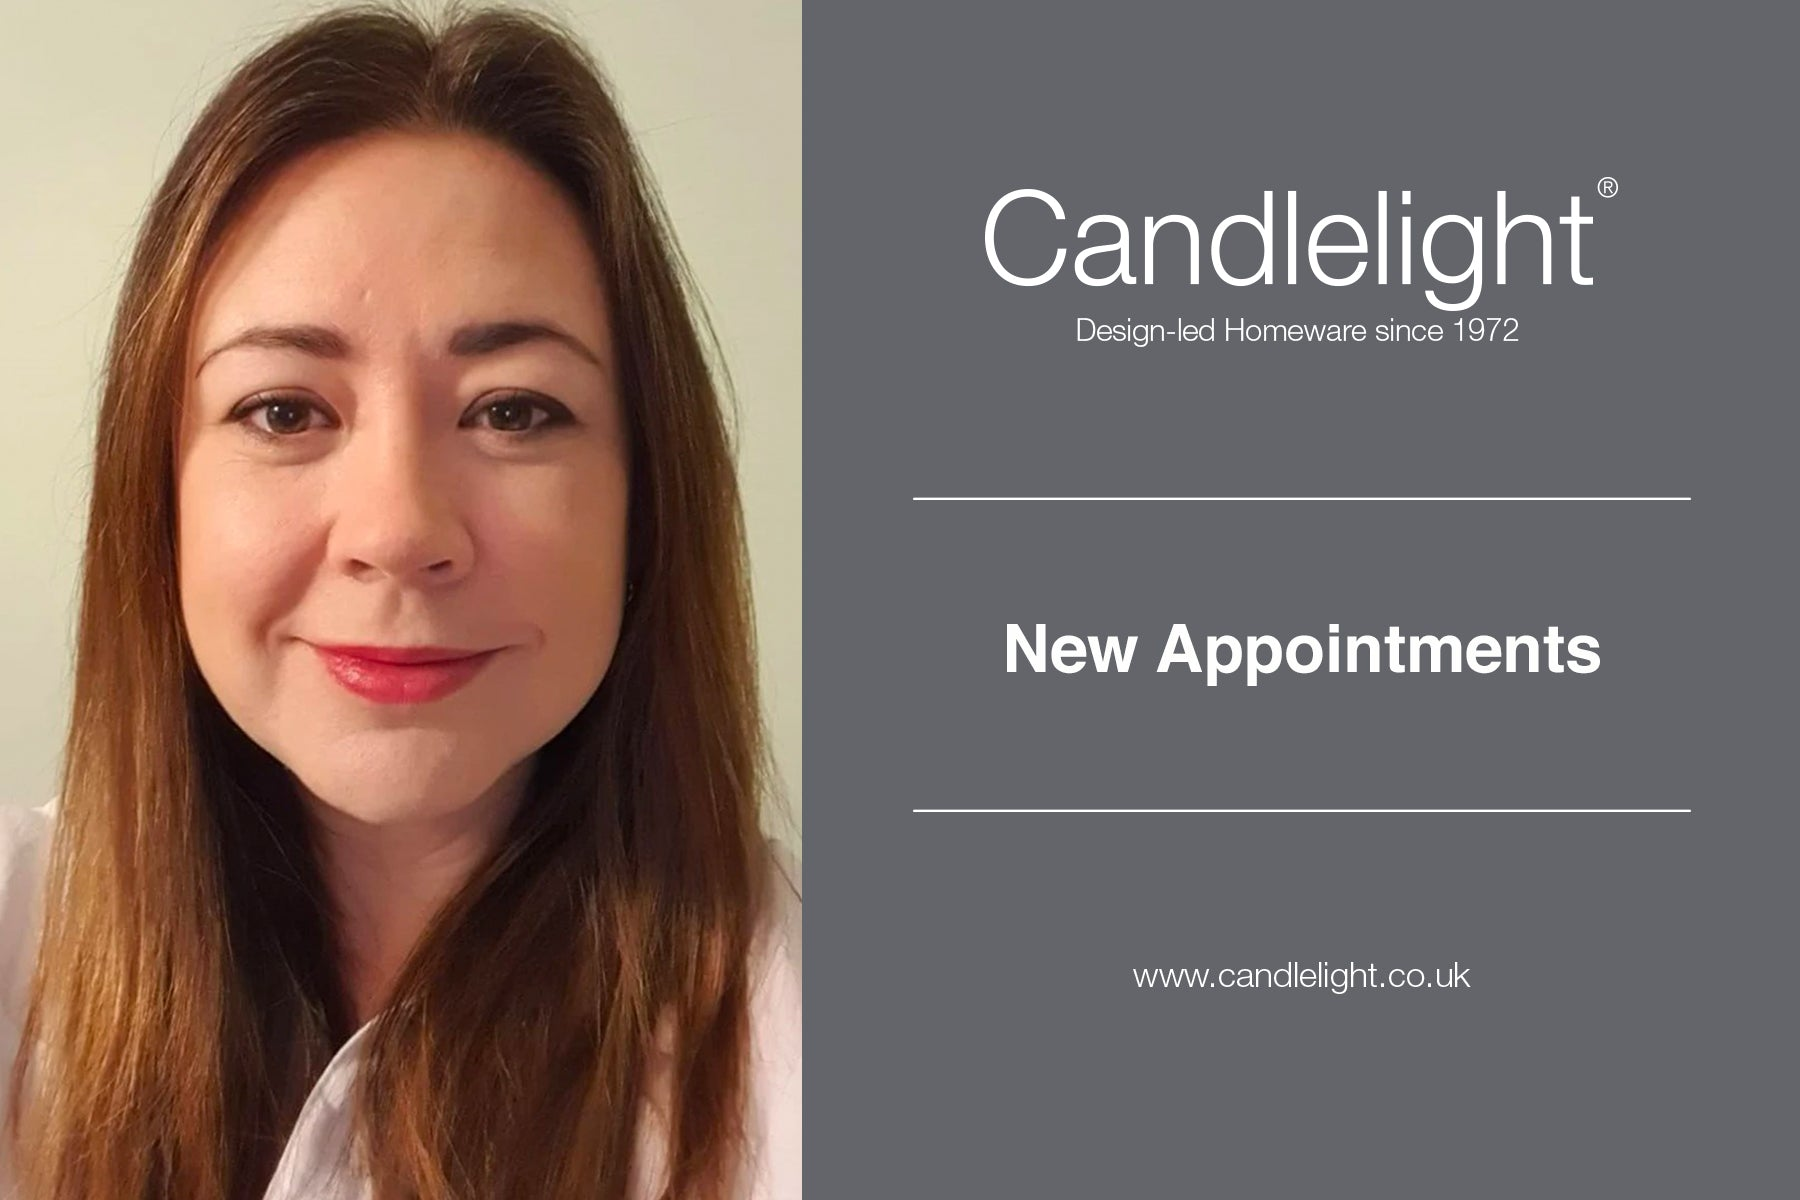 New Appointments at Candlelight